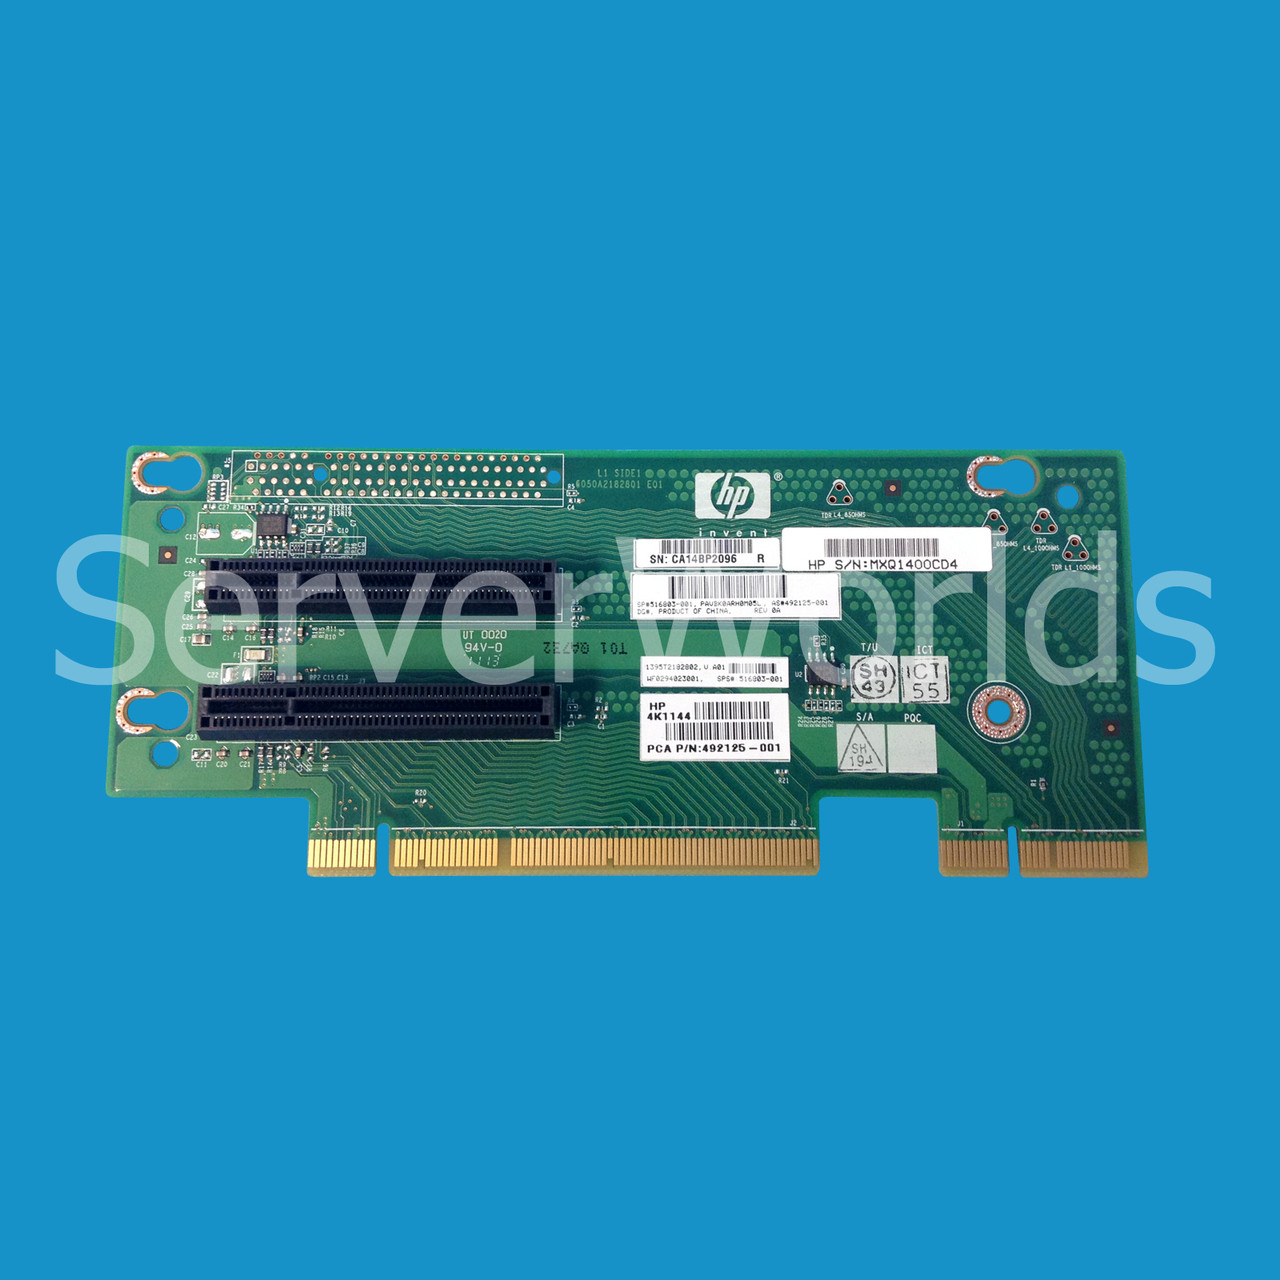 Hp 516803 001 Dl180 G6 Pcie Riser Board 492125 Serverworlds Notebook Ide Interface Cdrom To Usb External Drive Circuit Red Image 1